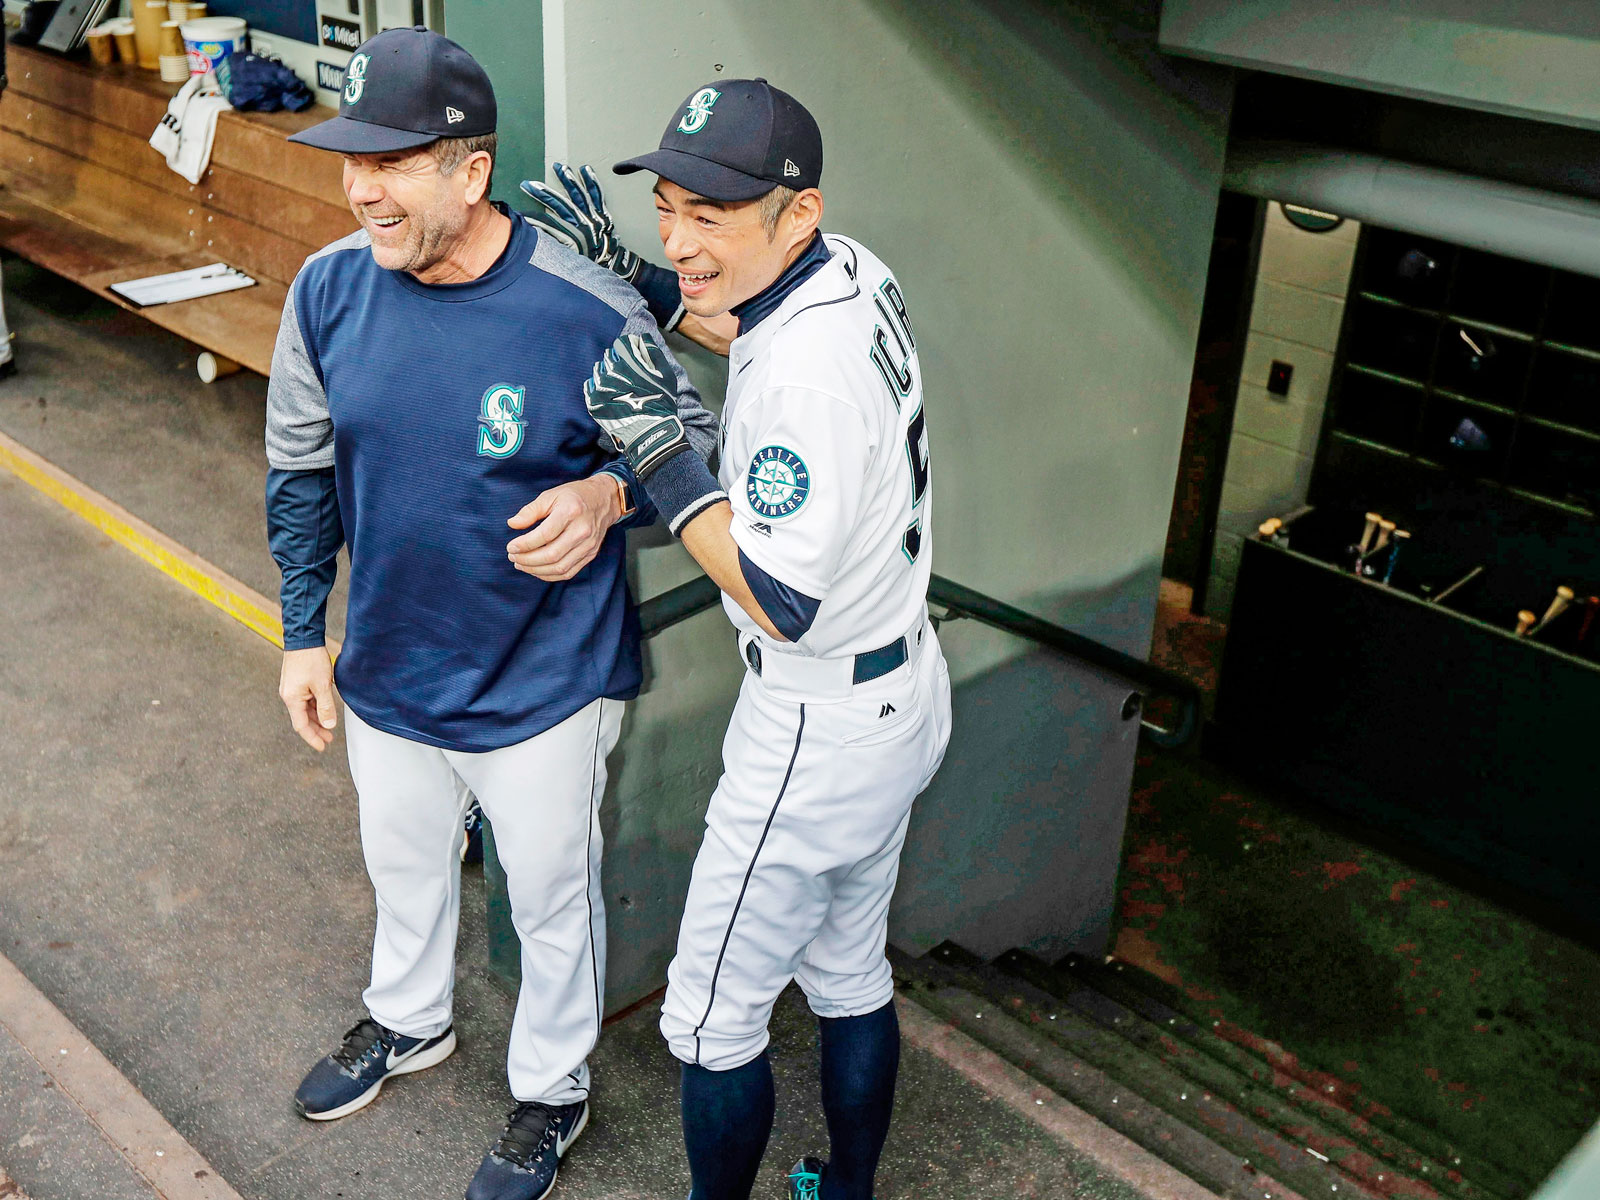 Mariners Will Seattles Unique Experiment Lead To Playoffs Ichiro Young Red Its Franchise Legends Like Martinez And Who After A Short Return The Team Earlier This Season Stayed On In Special Assistant Role